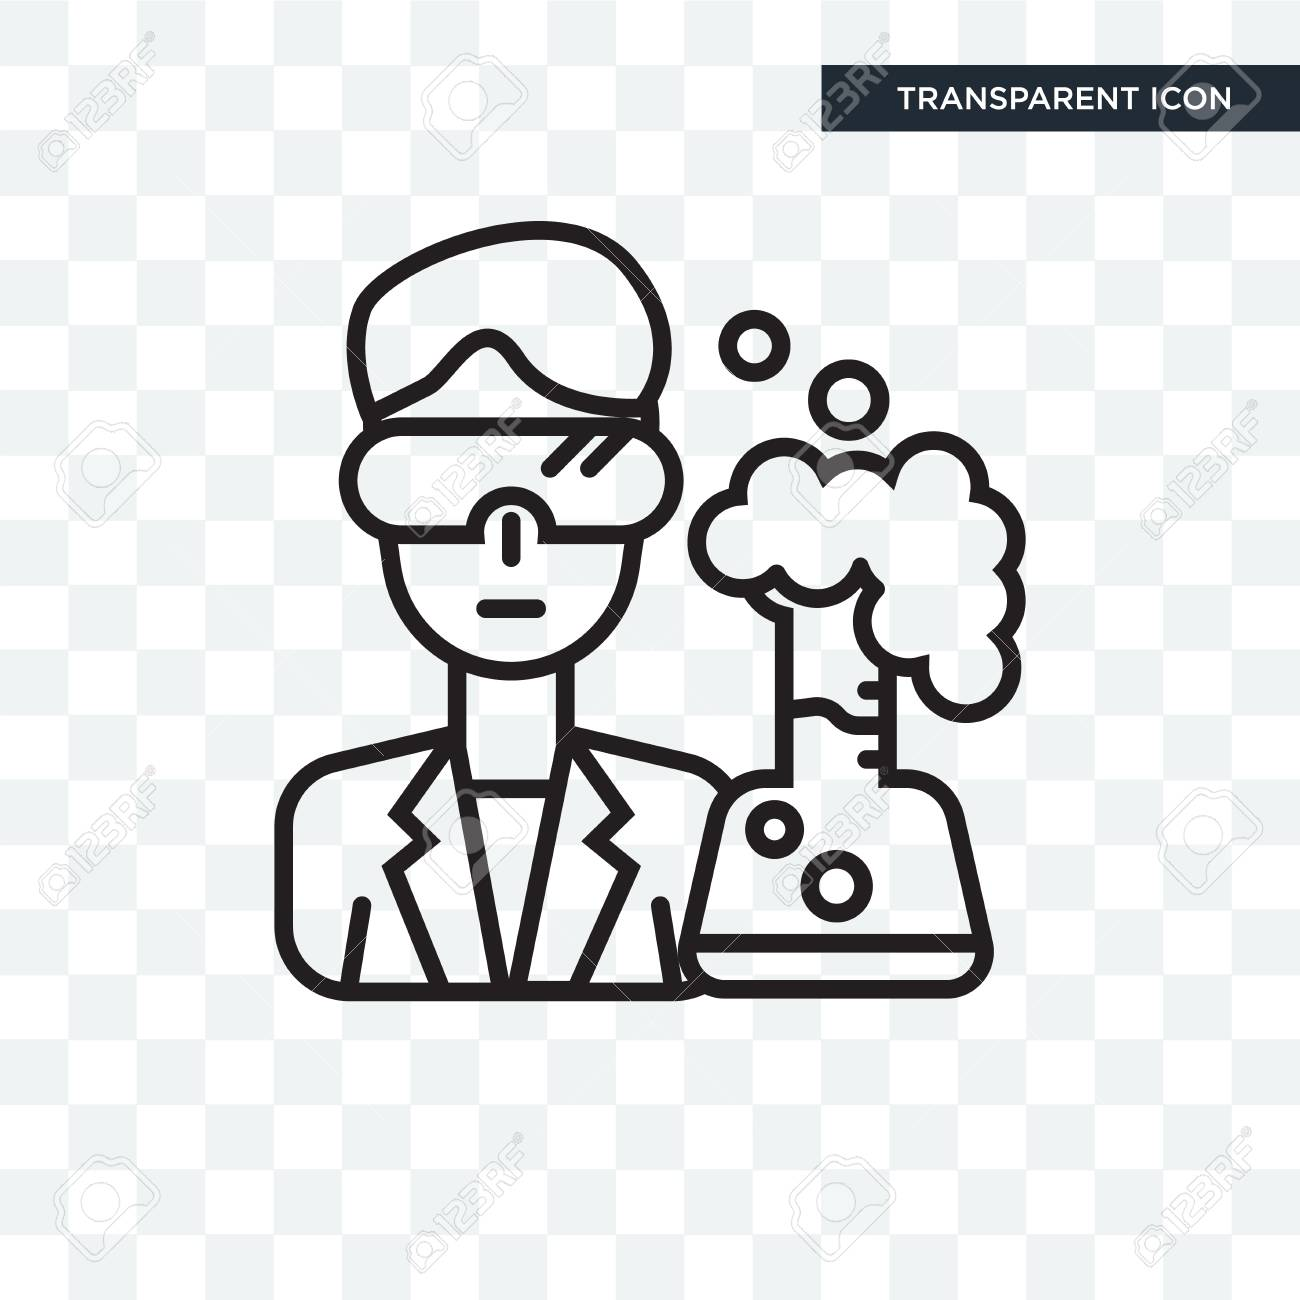 scientist vector icon isolated on transparent background scientist royalty free cliparts vectors and stock illustration image 107604965 scientist vector icon isolated on transparent background scientist